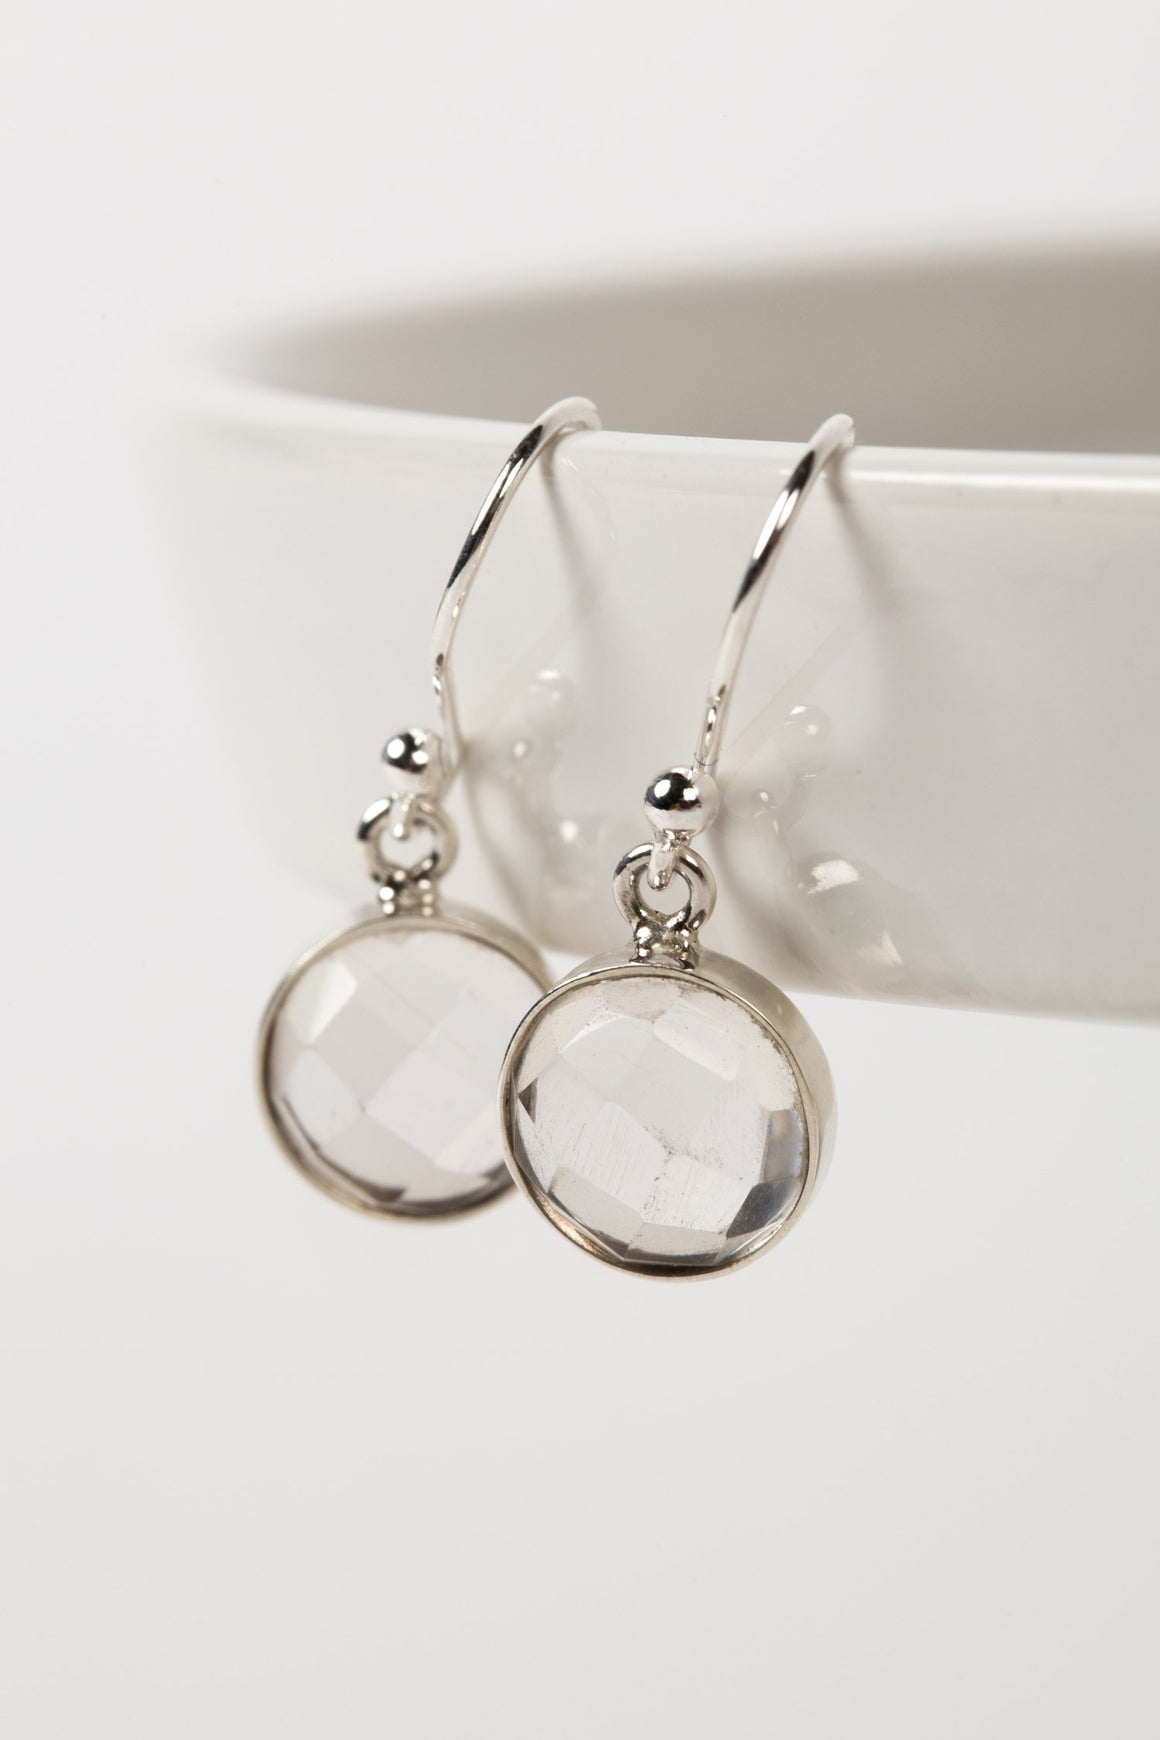 Crystal Drop Sterling Silver Earrings Handcrafted in Peru